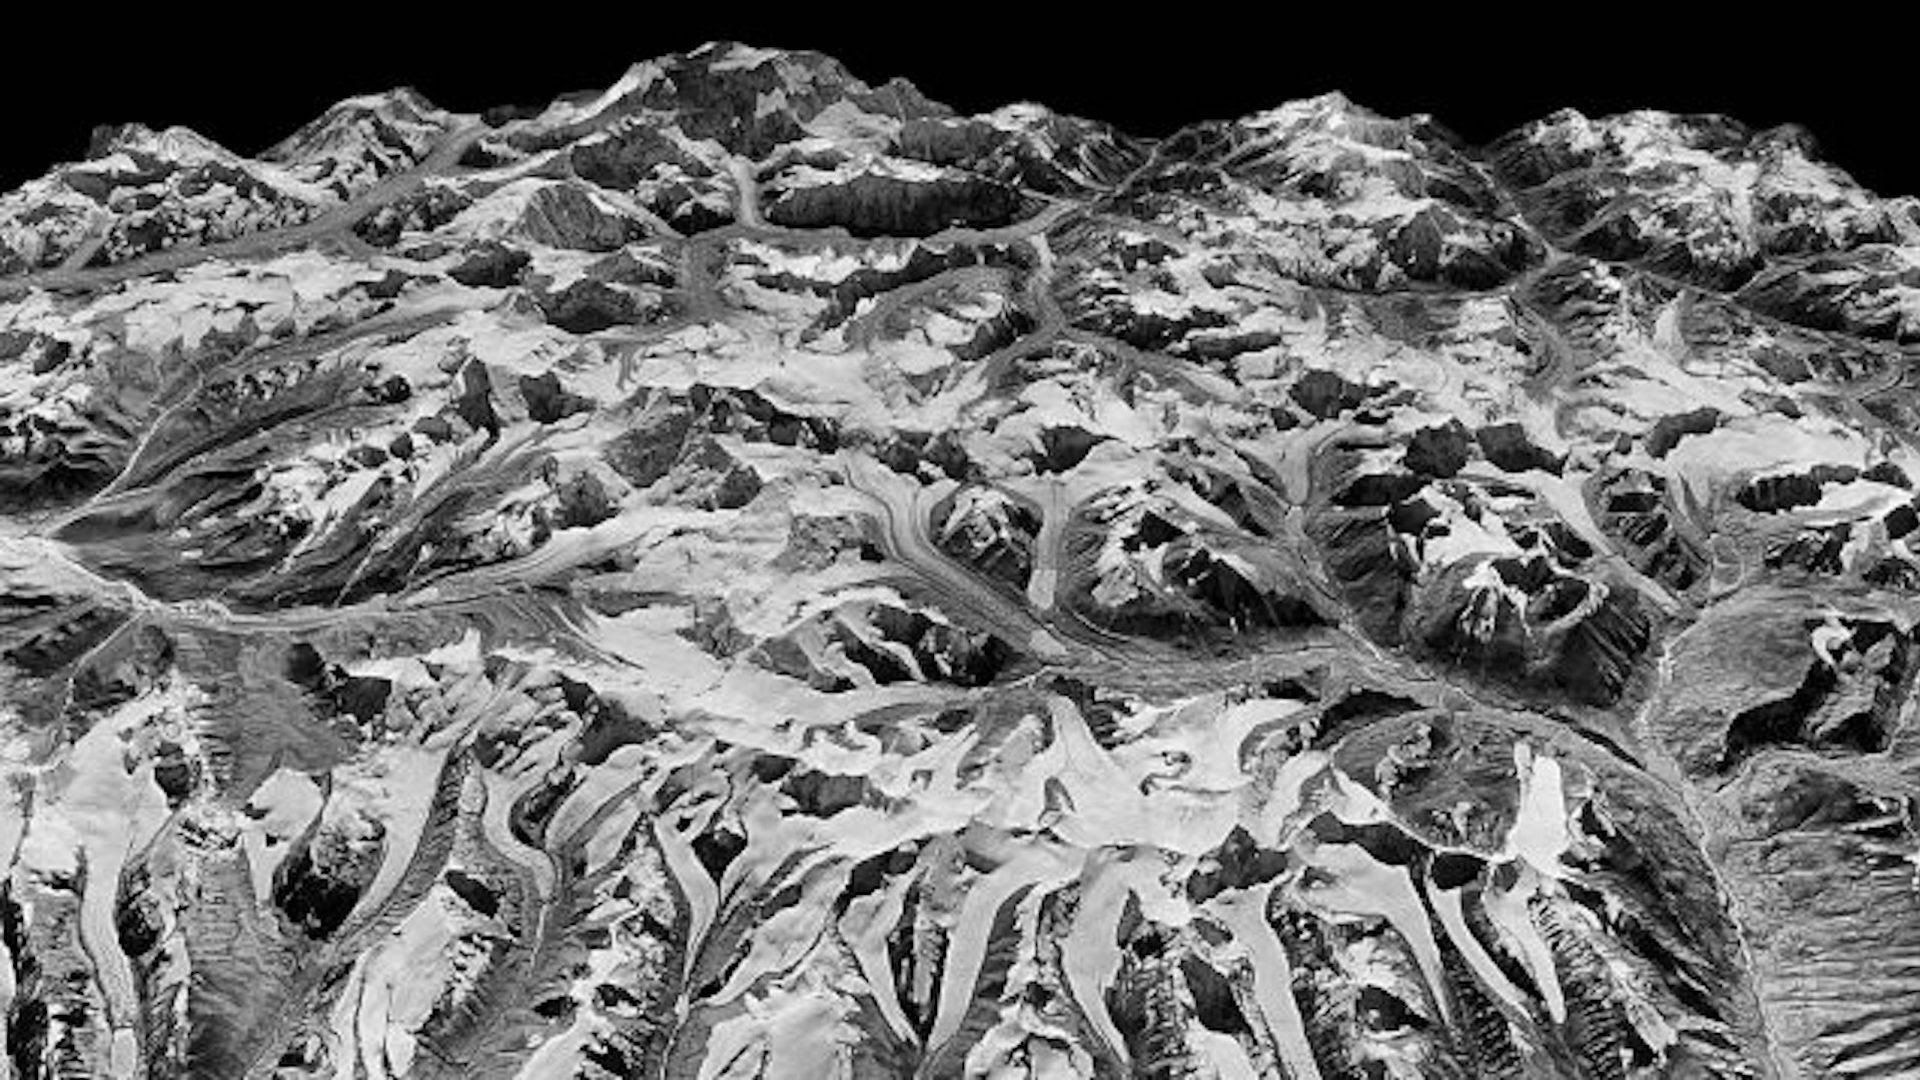 Oblique view of the Himalayas